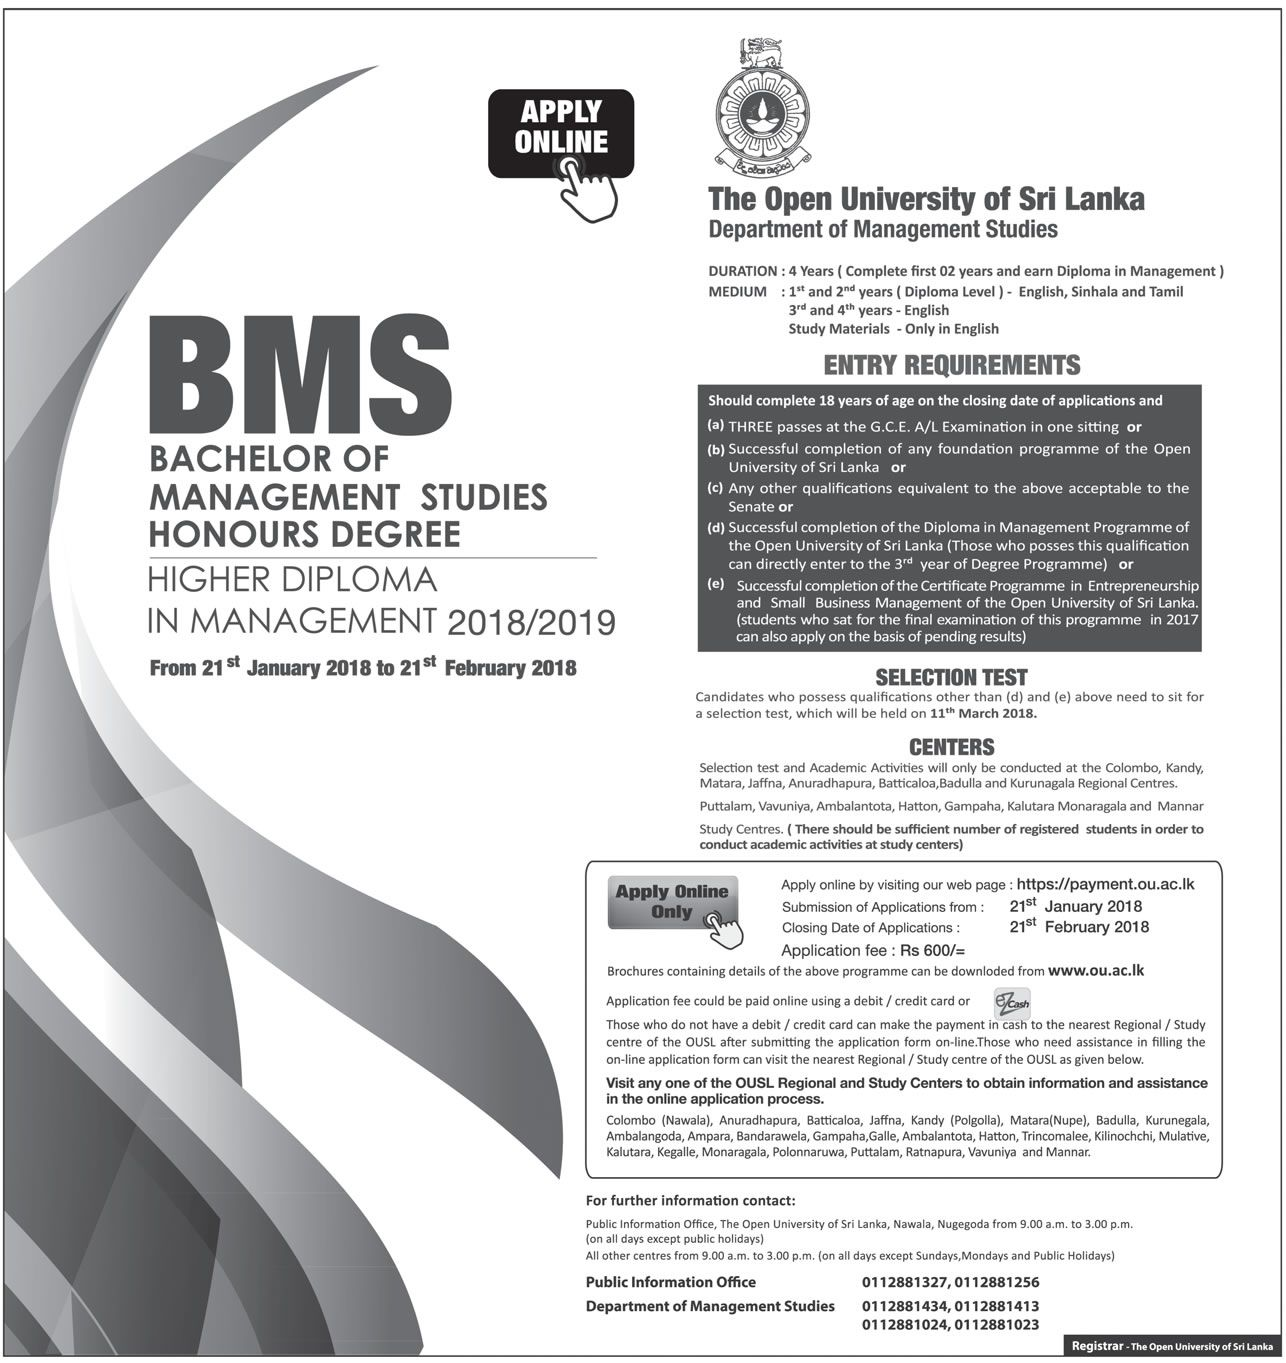 Bachelor Of Management Studies Honours Degree Higher Diploma In Management 2018 2019 The Open Universit High Diploma University Management Honours Degree